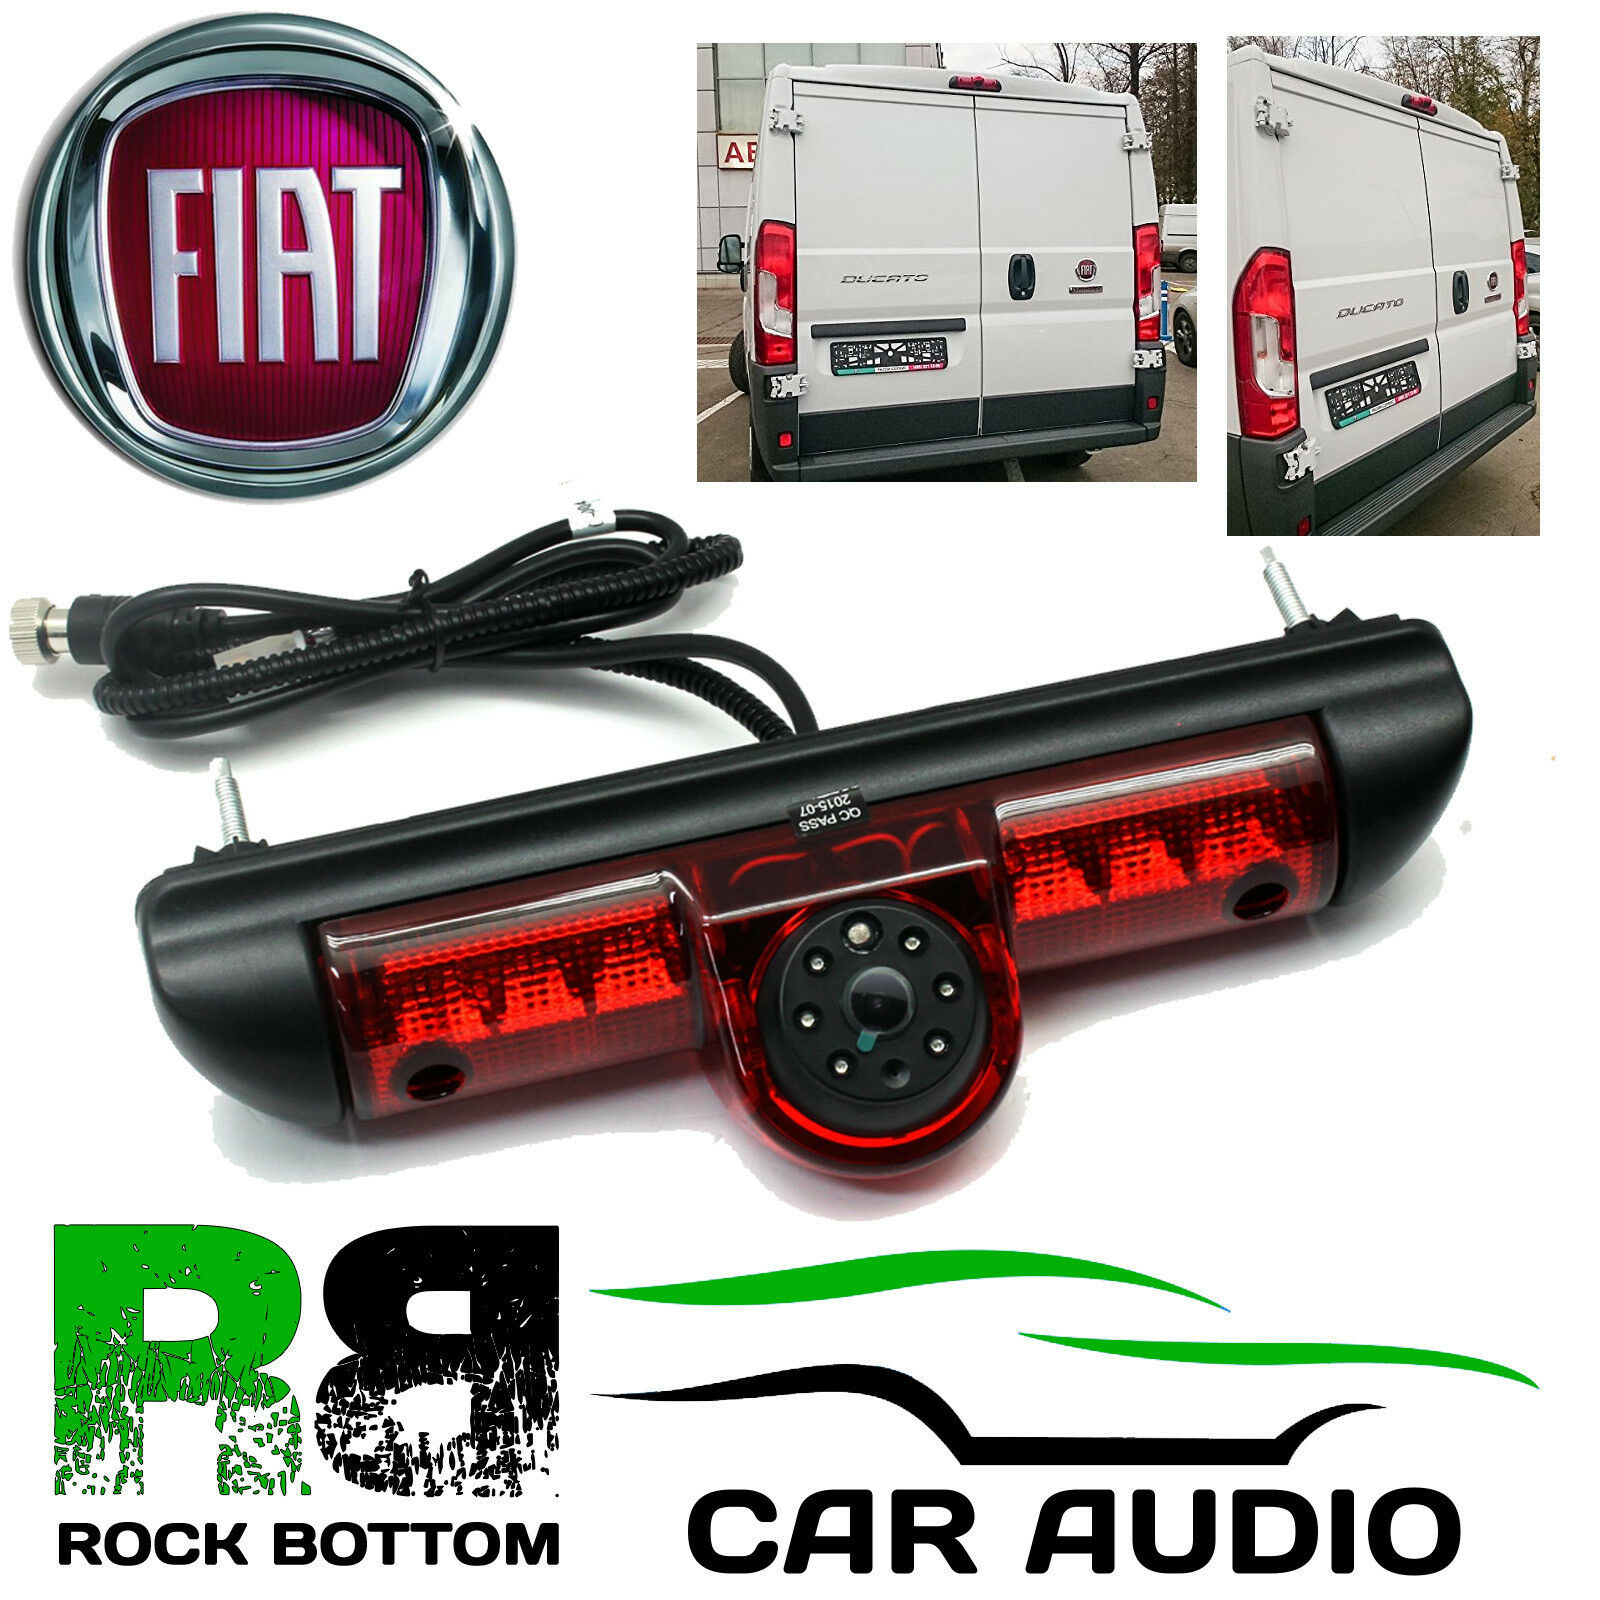 fiat ducato van x250 x290 led brake light rear view reversing camera cam ft1. Black Bedroom Furniture Sets. Home Design Ideas